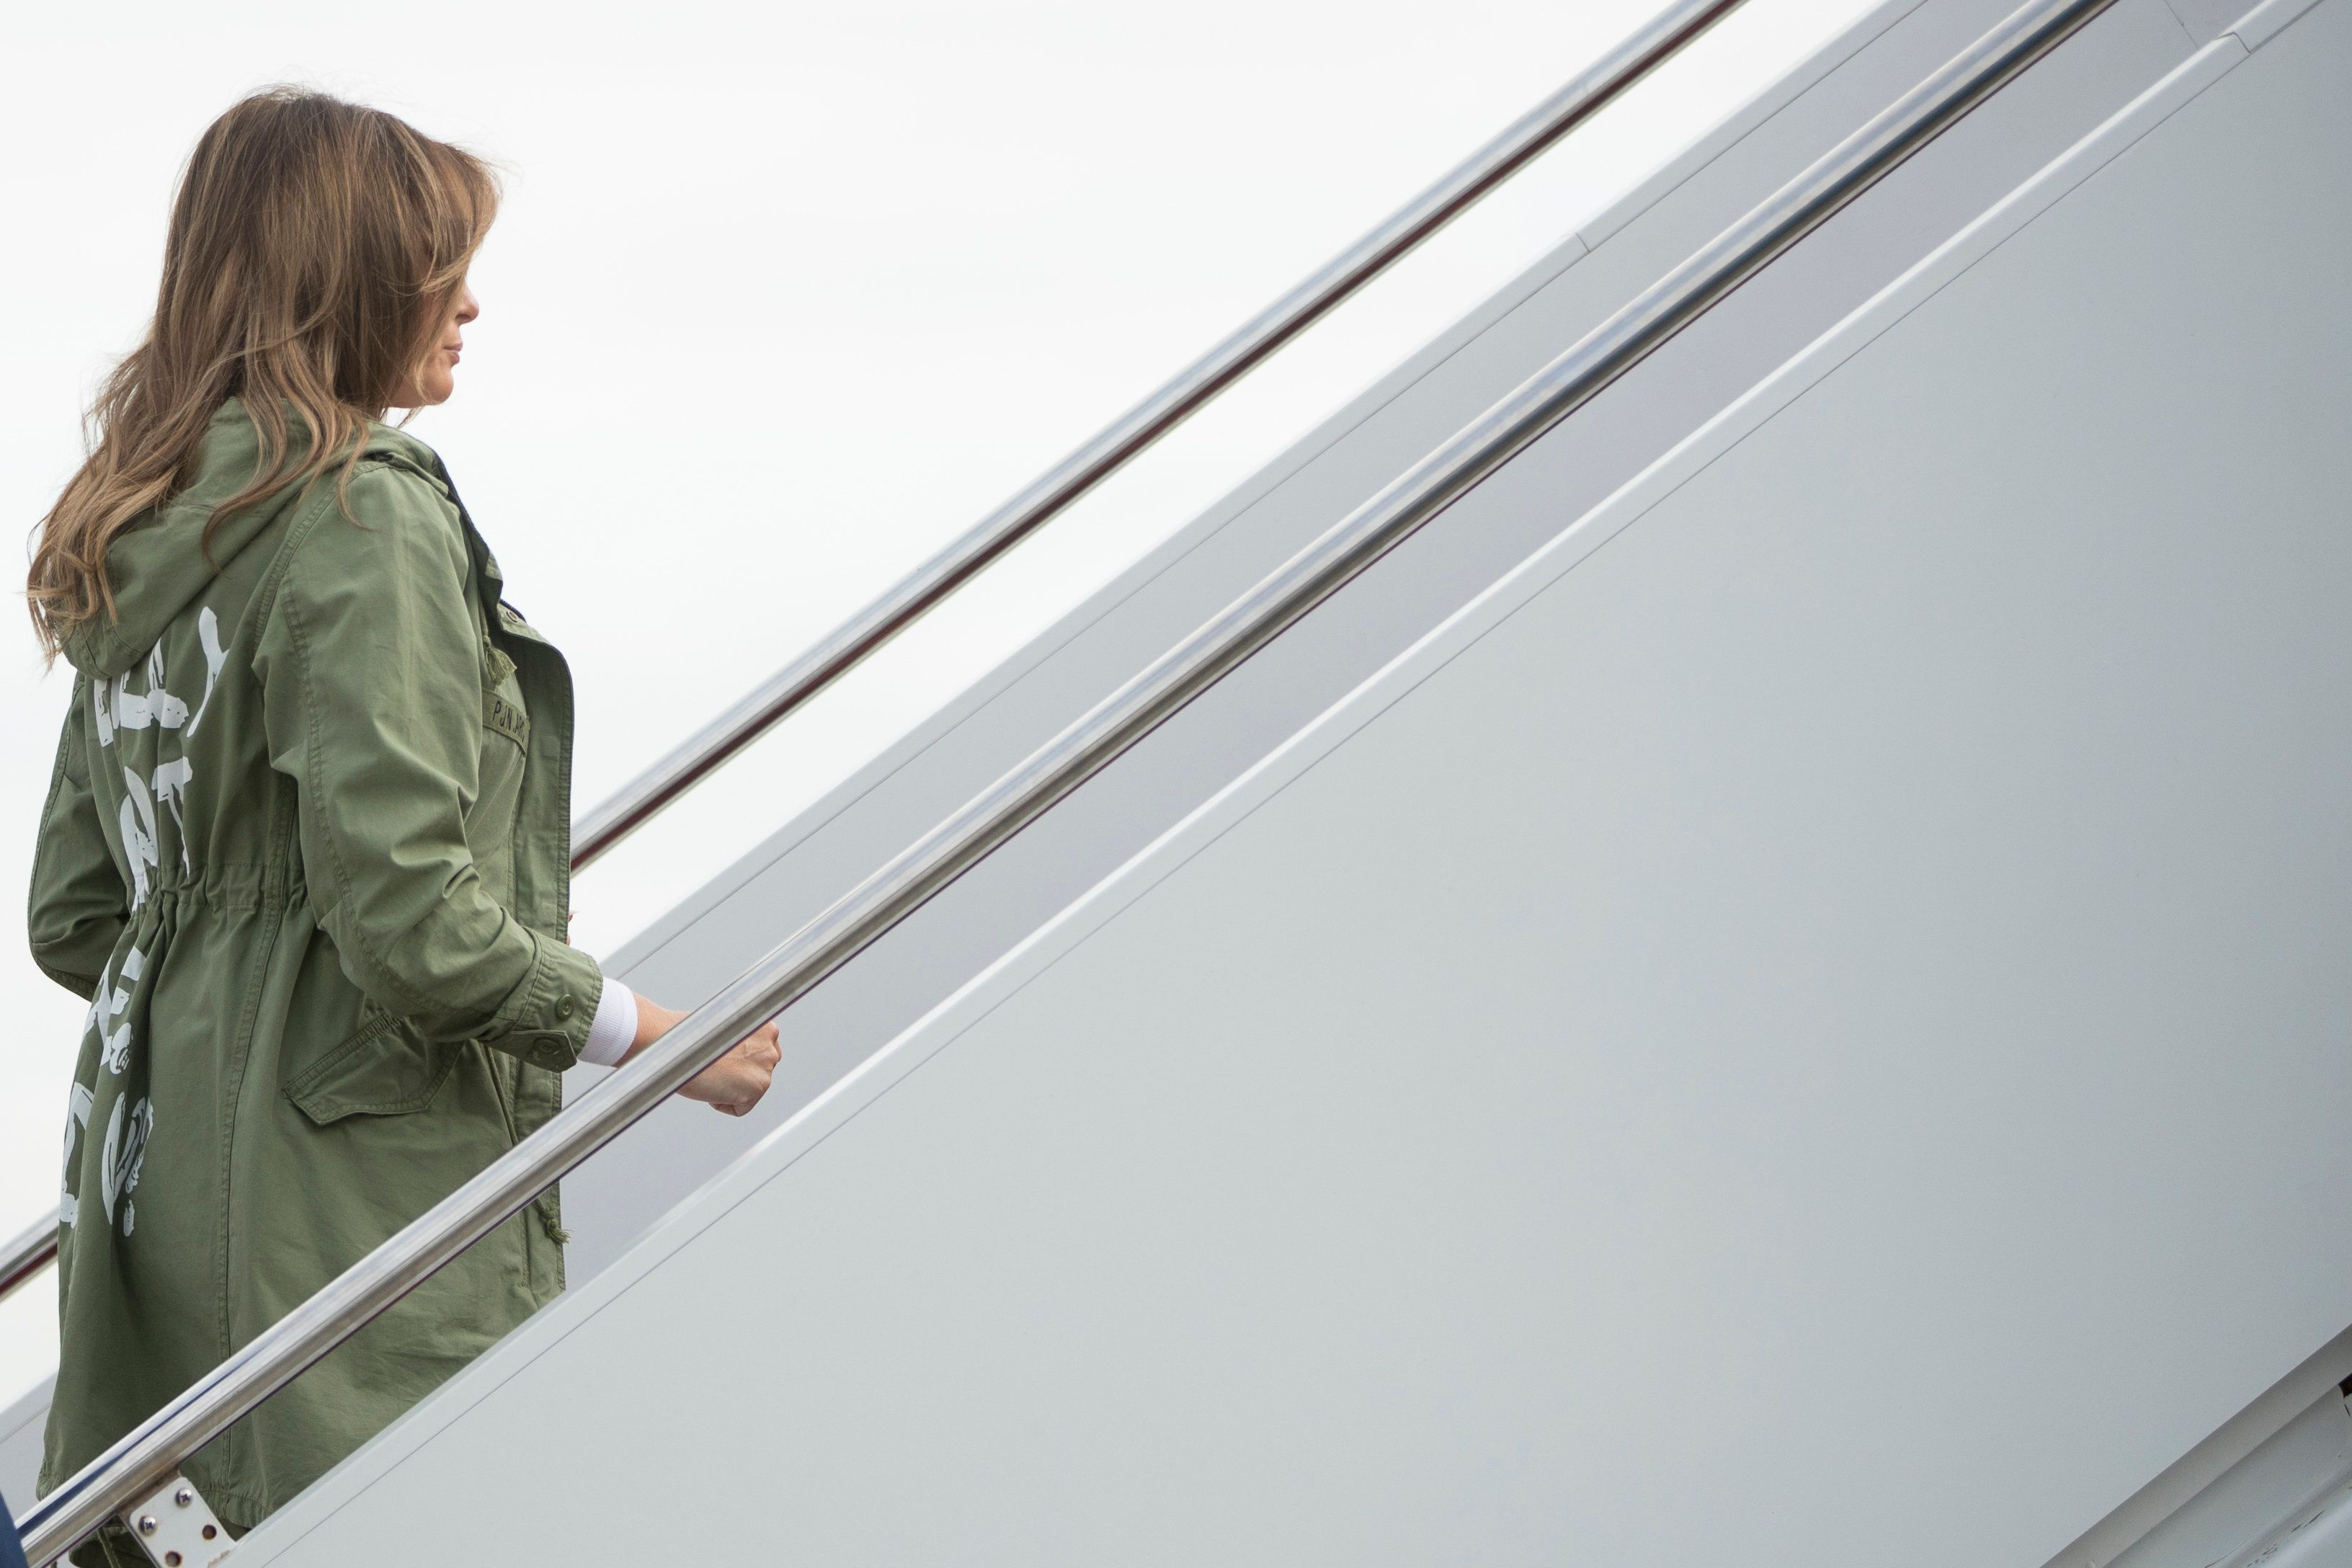 First lady Melania Trumpboards a plane atAndrews Air Force Base in Maryland on June 21.